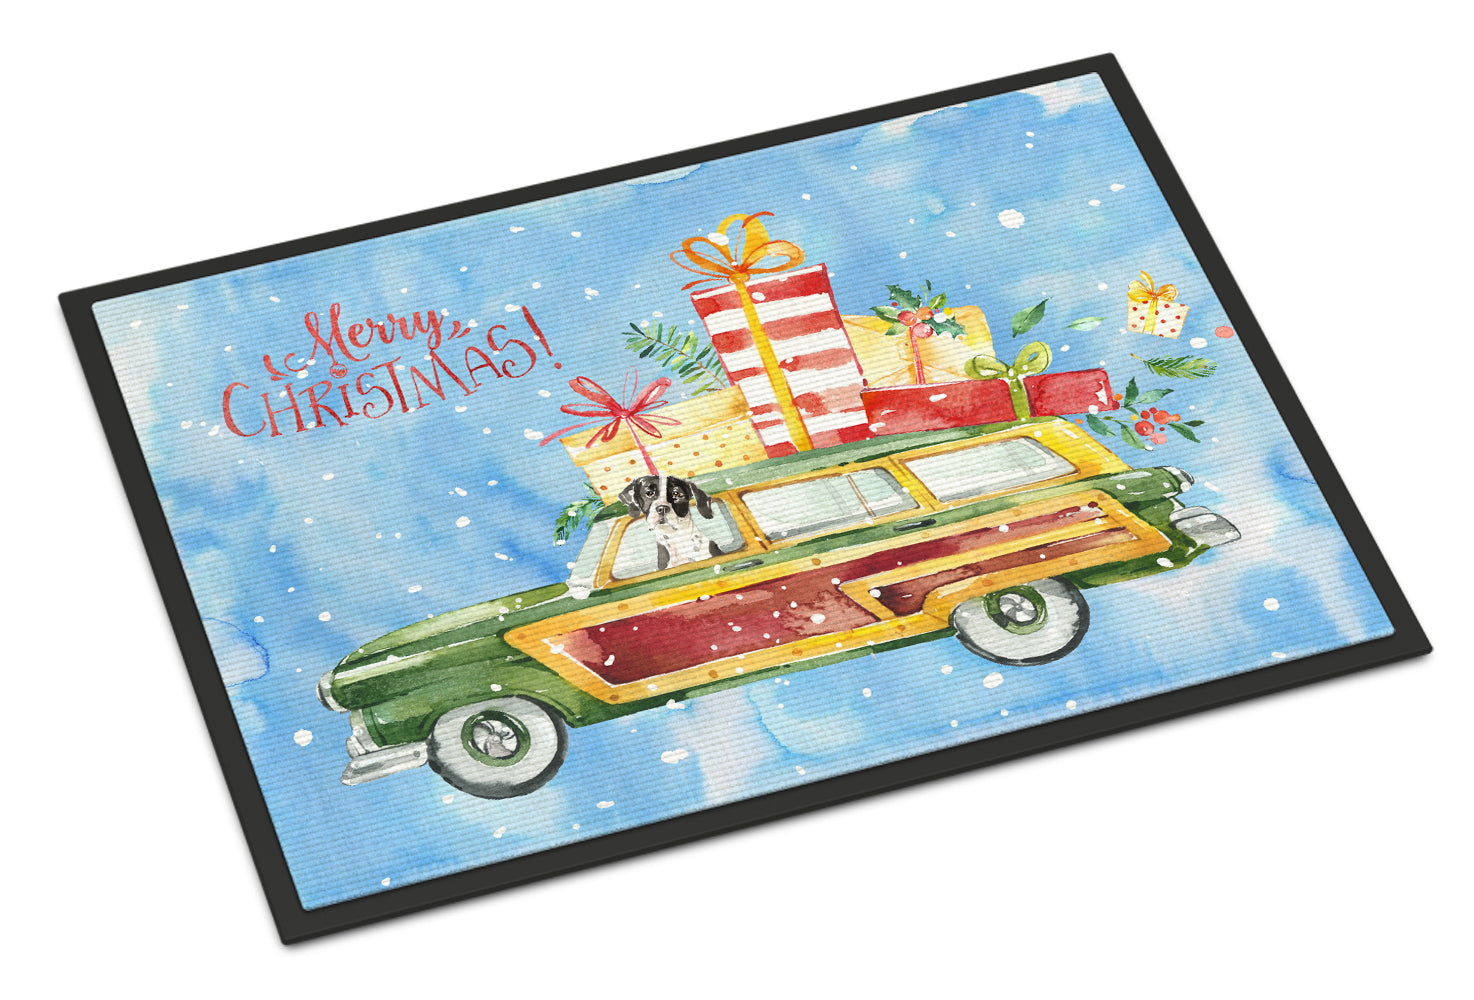 Merry Christmas English Pointer Indoor or Outdoor Mat 18x27 CK2405MAT by Caroline's Treasures